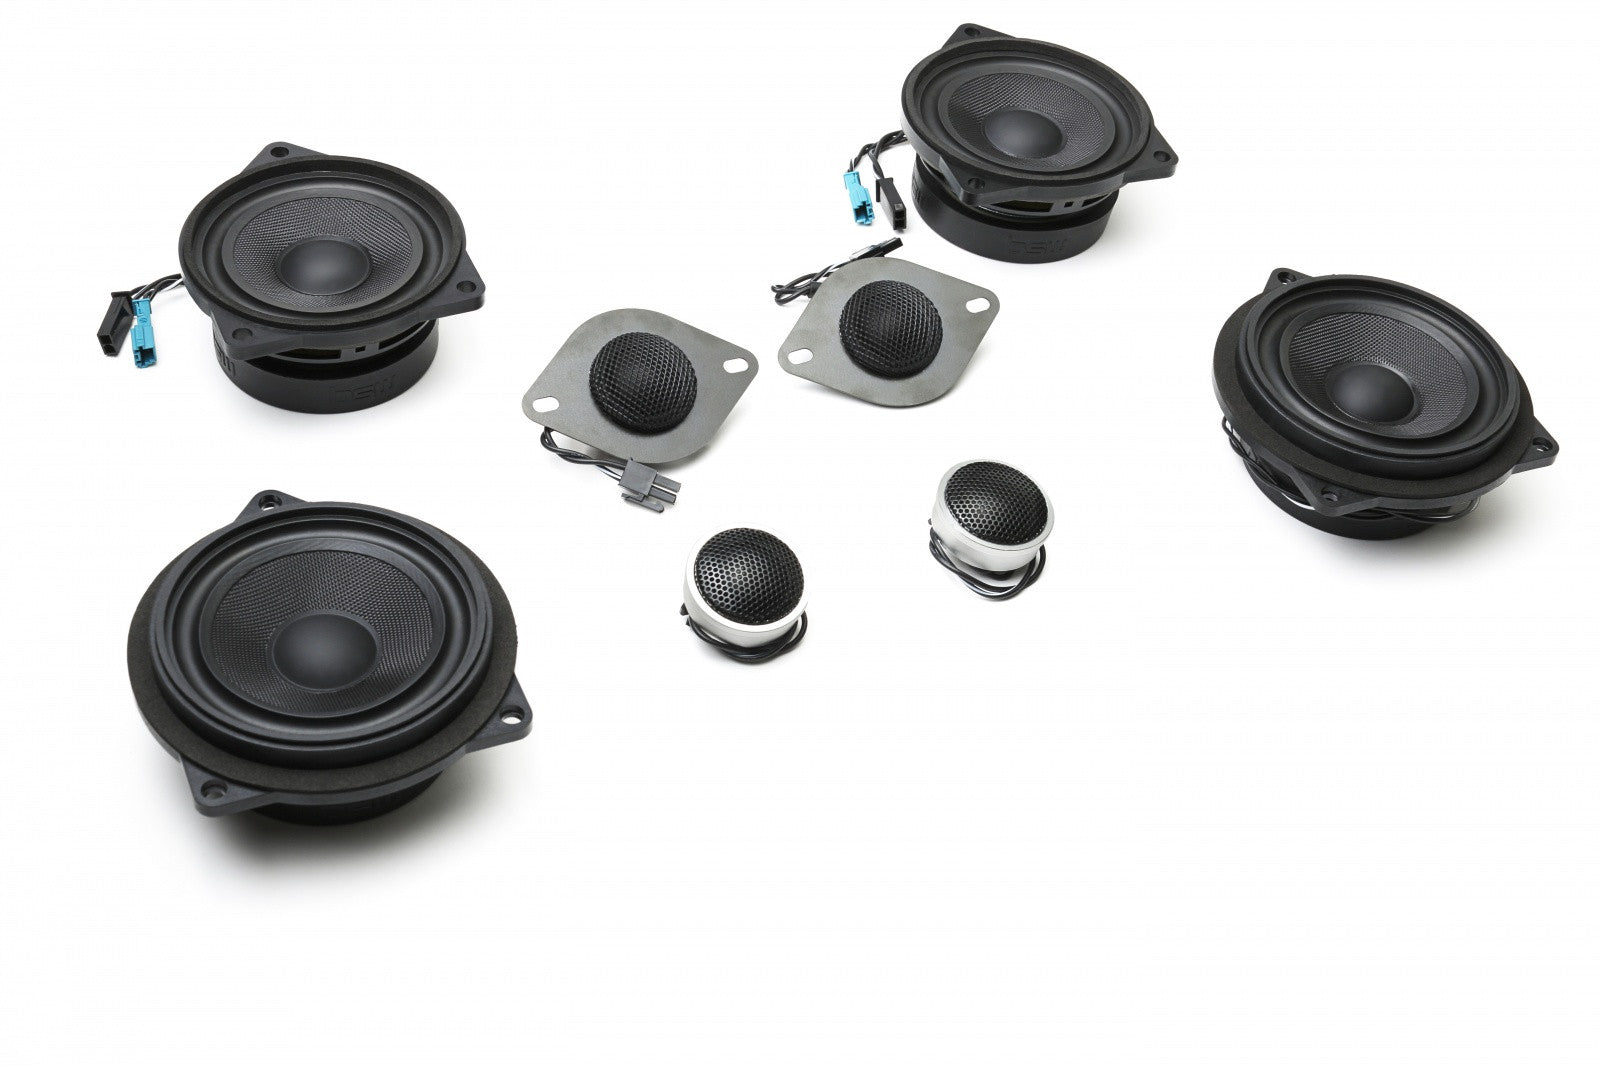 Stage One BMW Speaker Upgrade for E90 Sedan with Base Audio (Including Separate Tweeters)